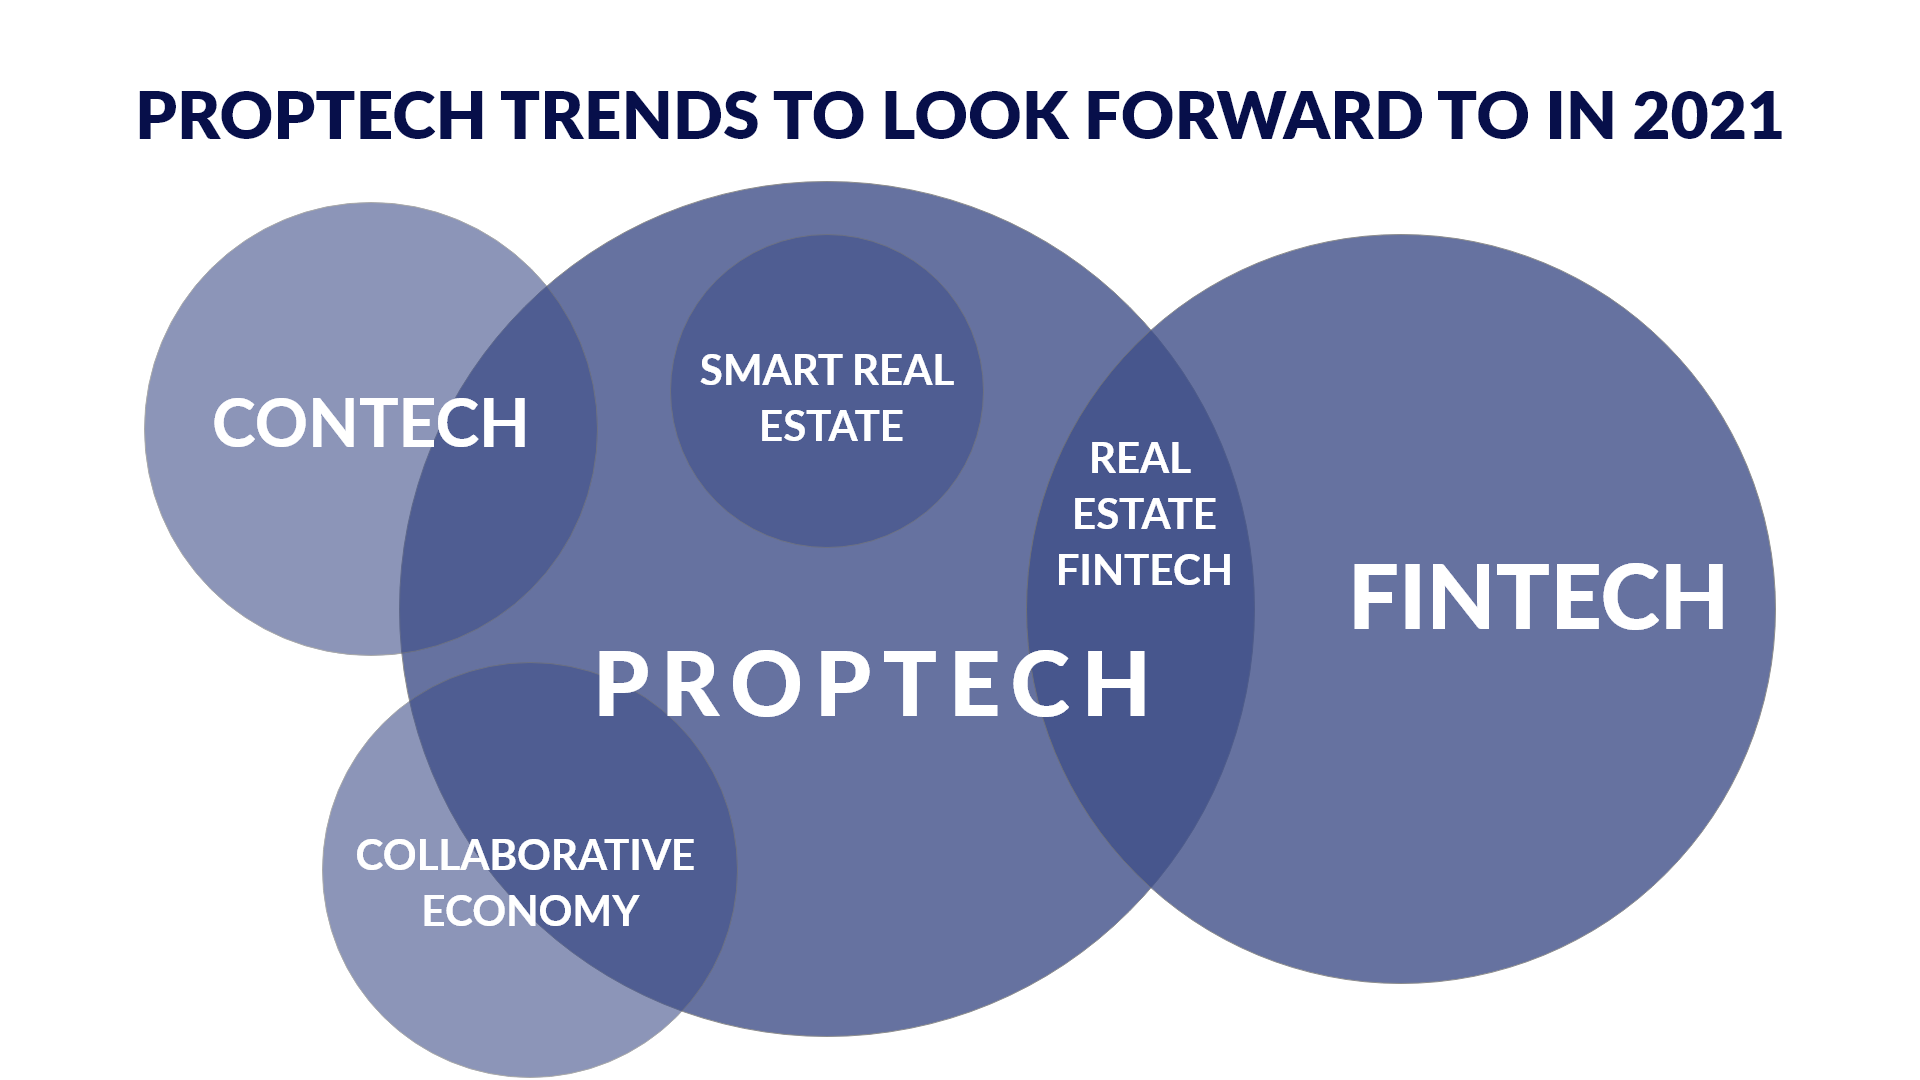 PropTech Industry - Emerging Trends and Technologies in 2021